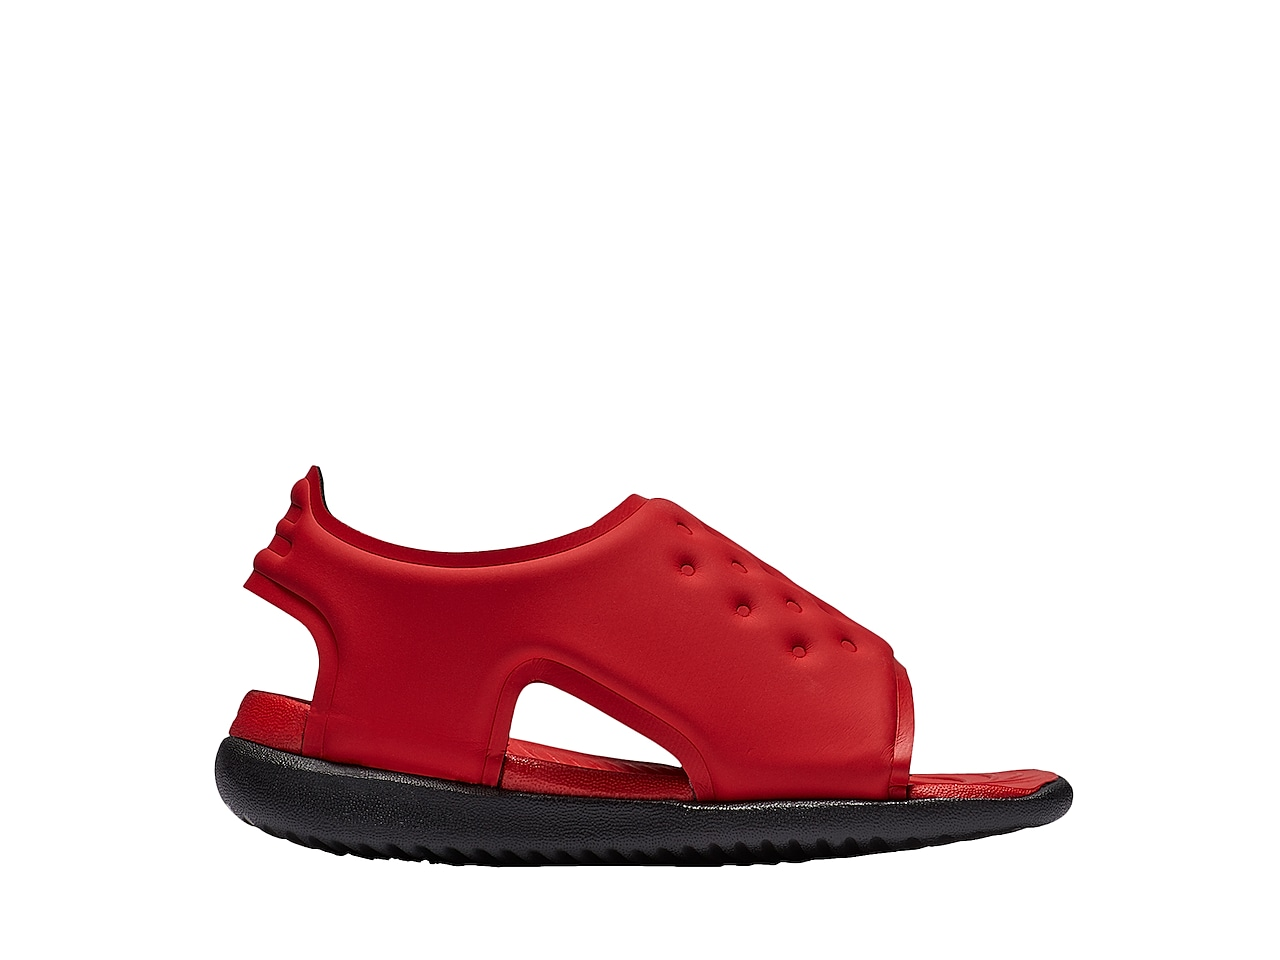 2911abb9 Toggle Image Magnification. Toggle Image Magnification. Prev; Next. Nike. Toddler  Boy's Sunray Adjust 5 BT Sandal